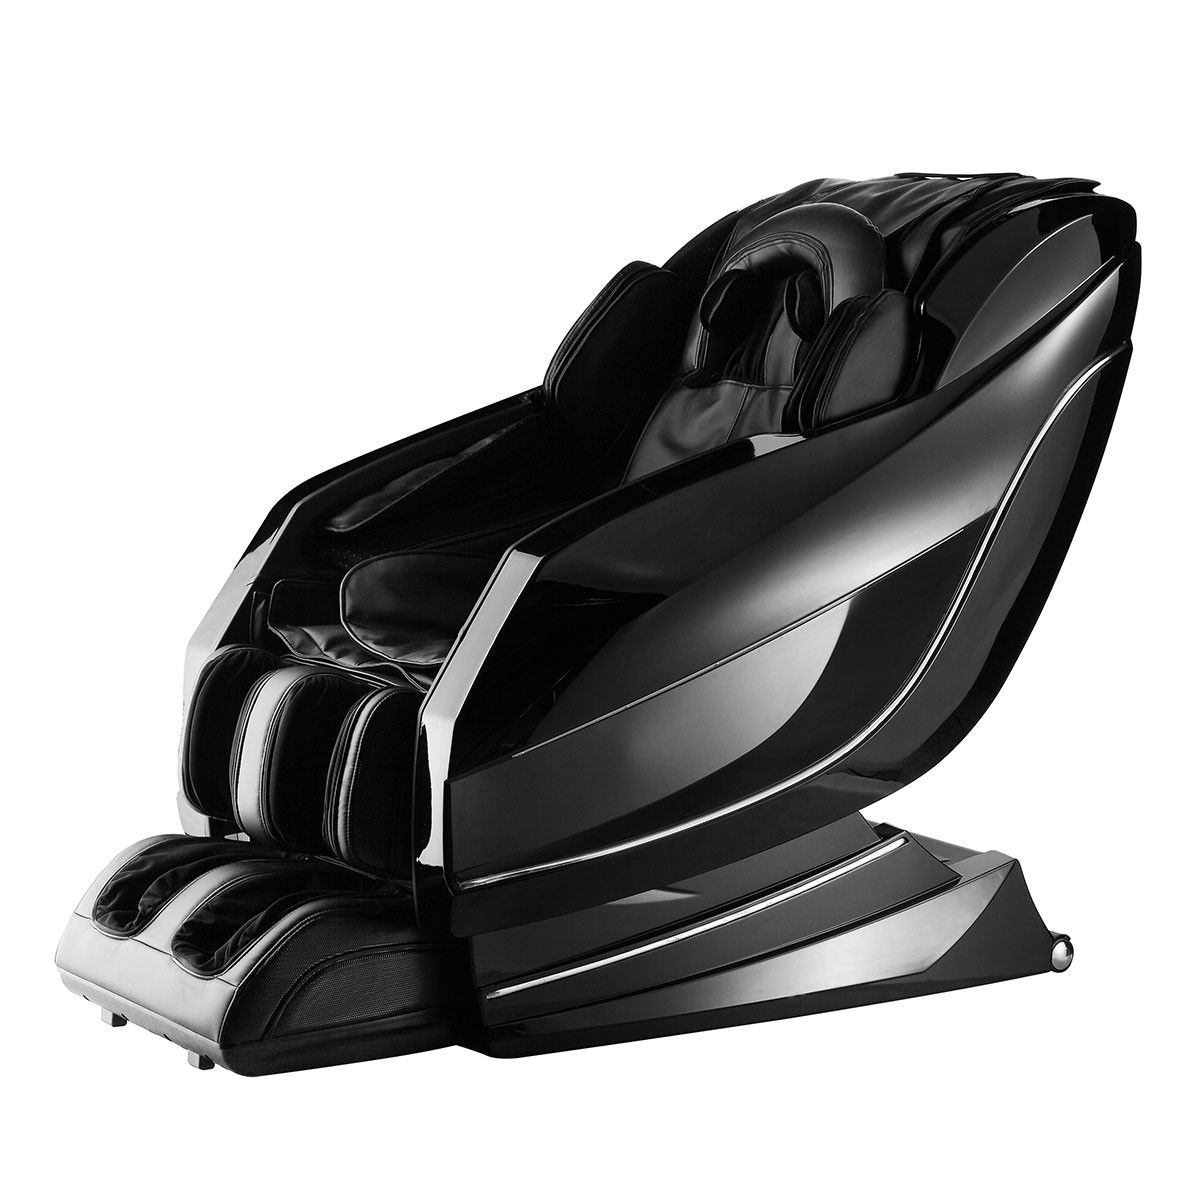 Zero Gravity Heated Reclining LTrack Massage Chair in